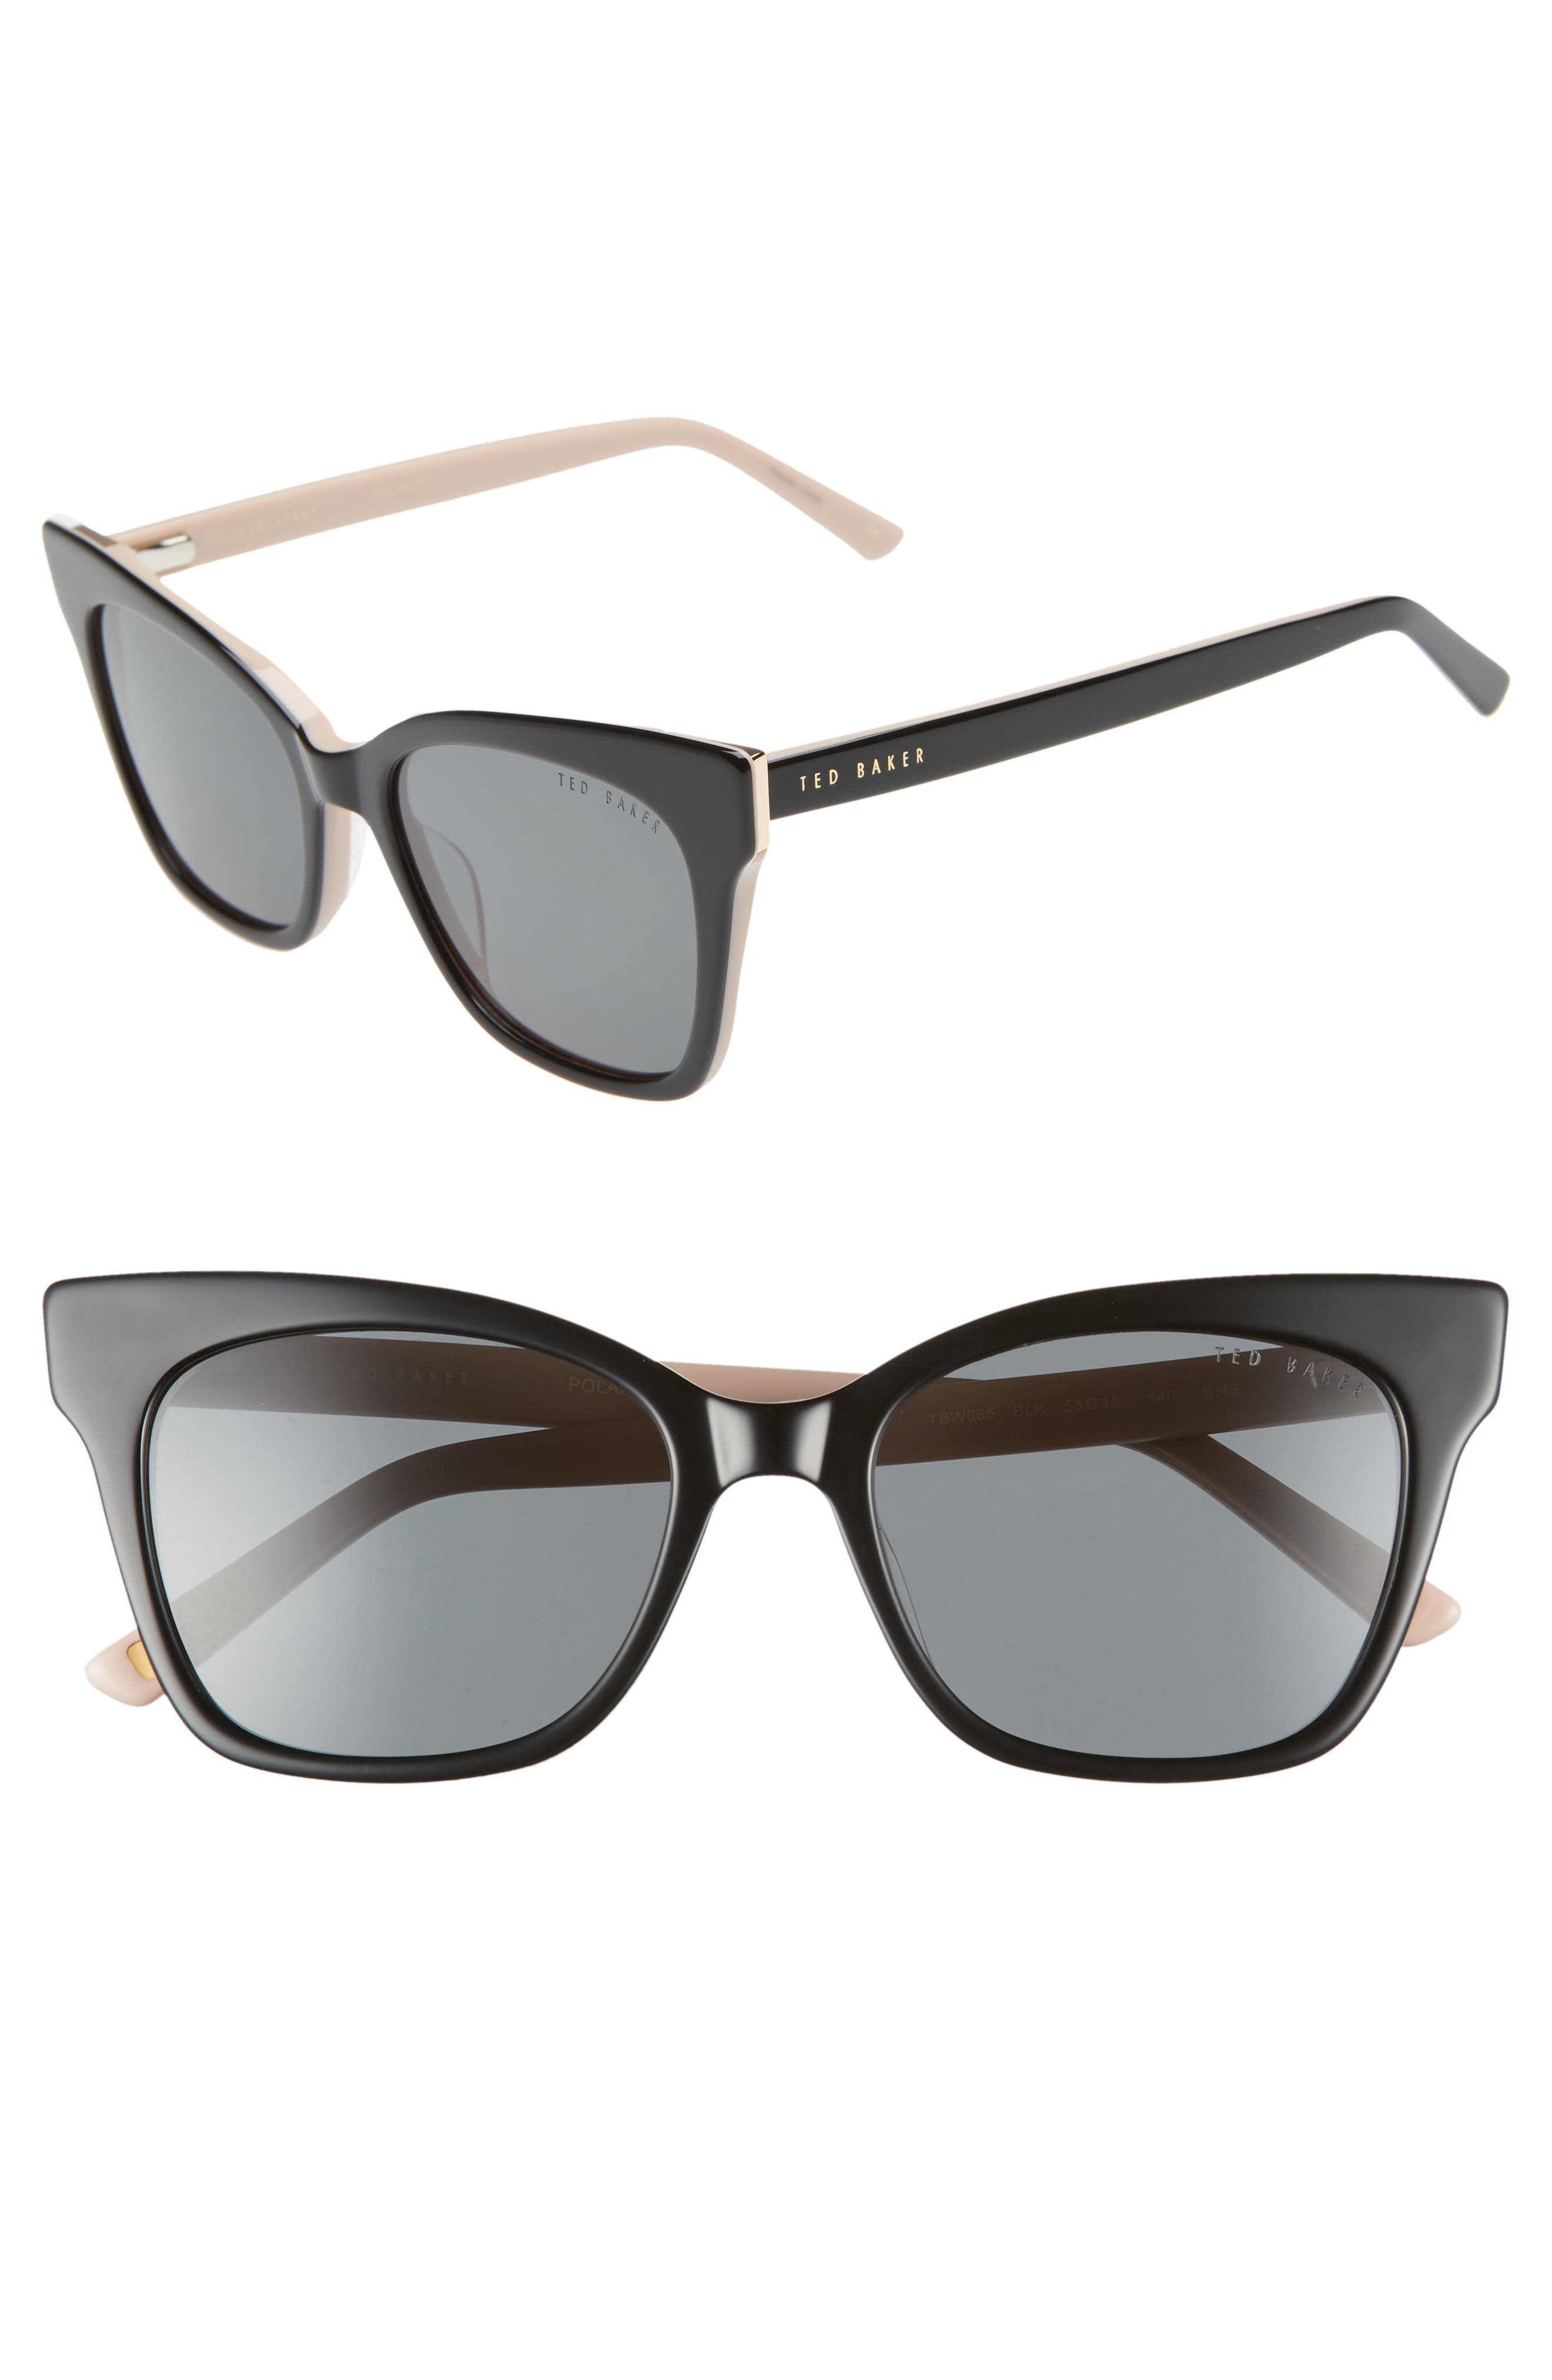 53mm Cat Eye Sunglasses,                         Main,                         color, BLACK